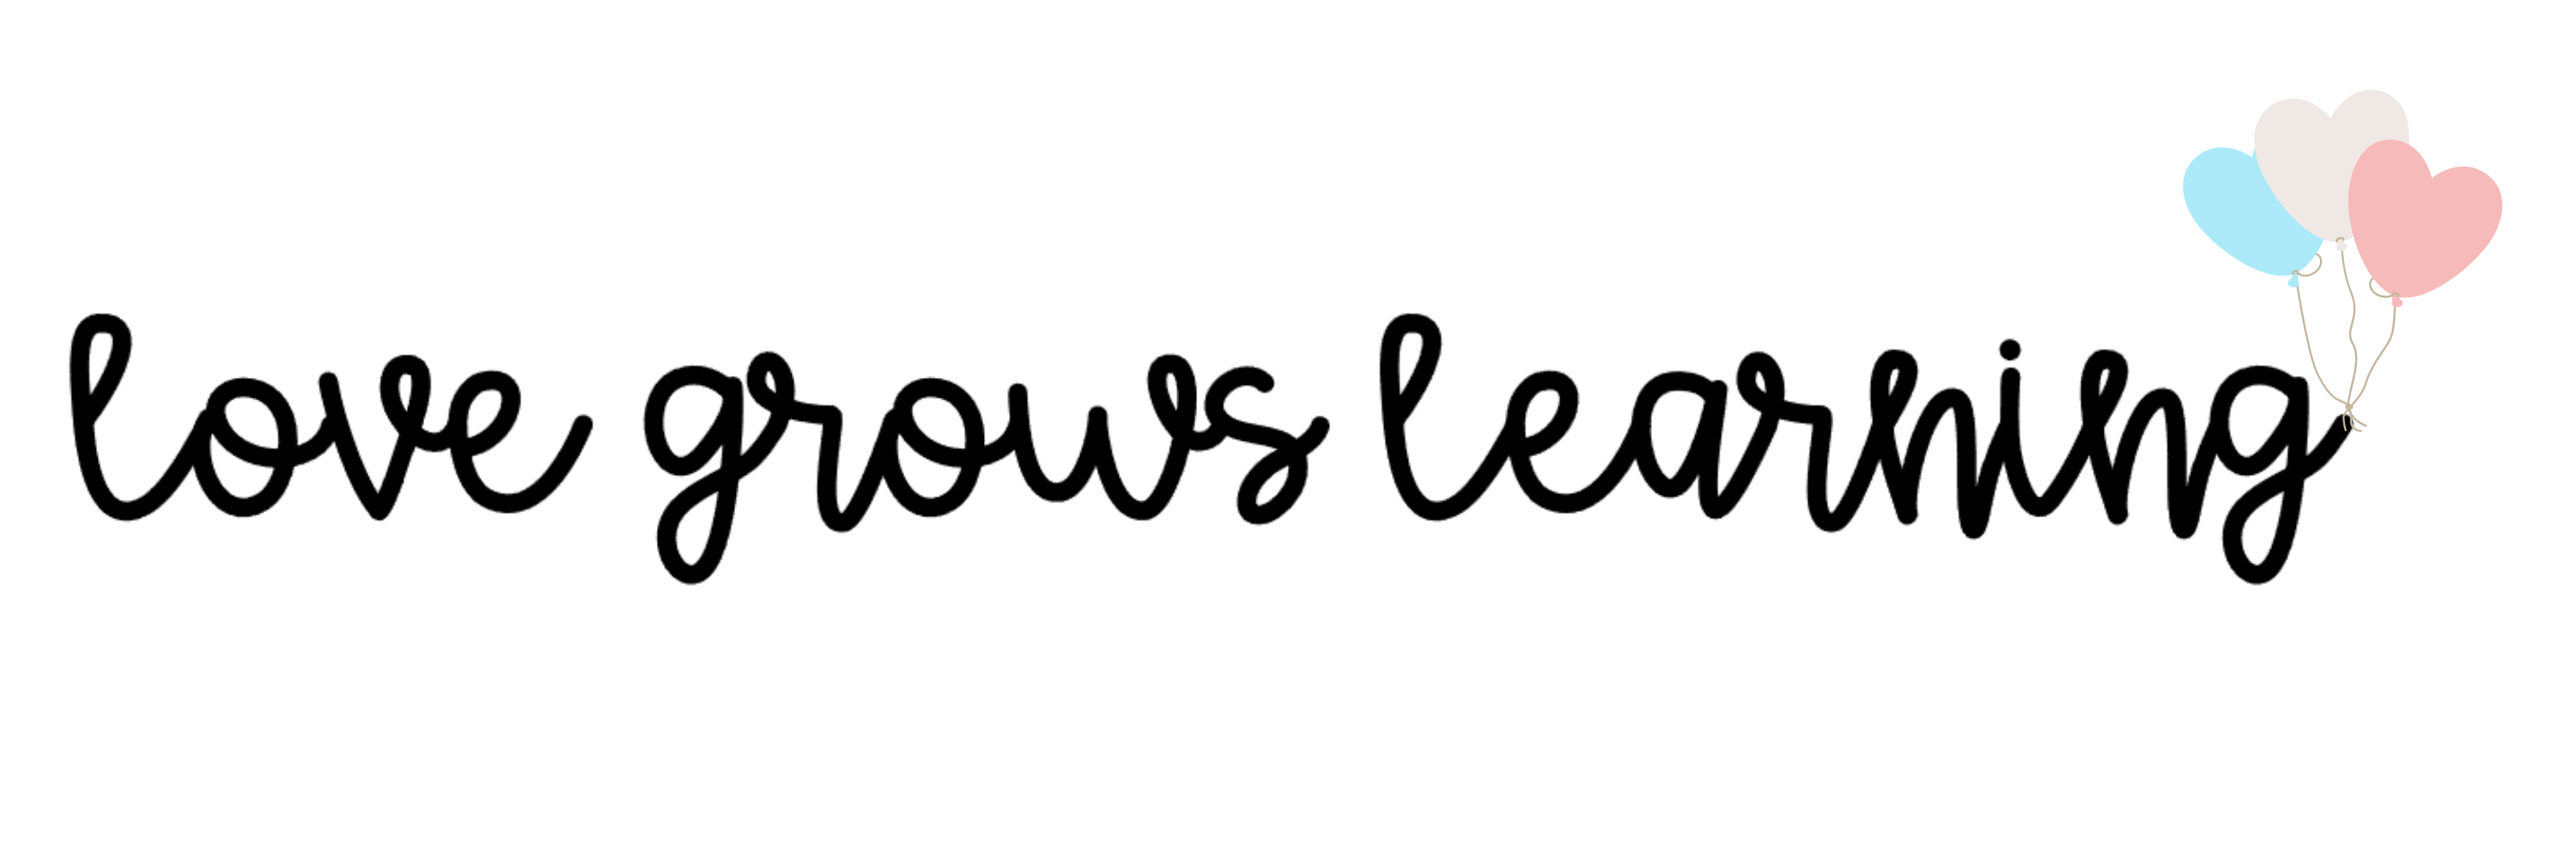 Love Grows Learning